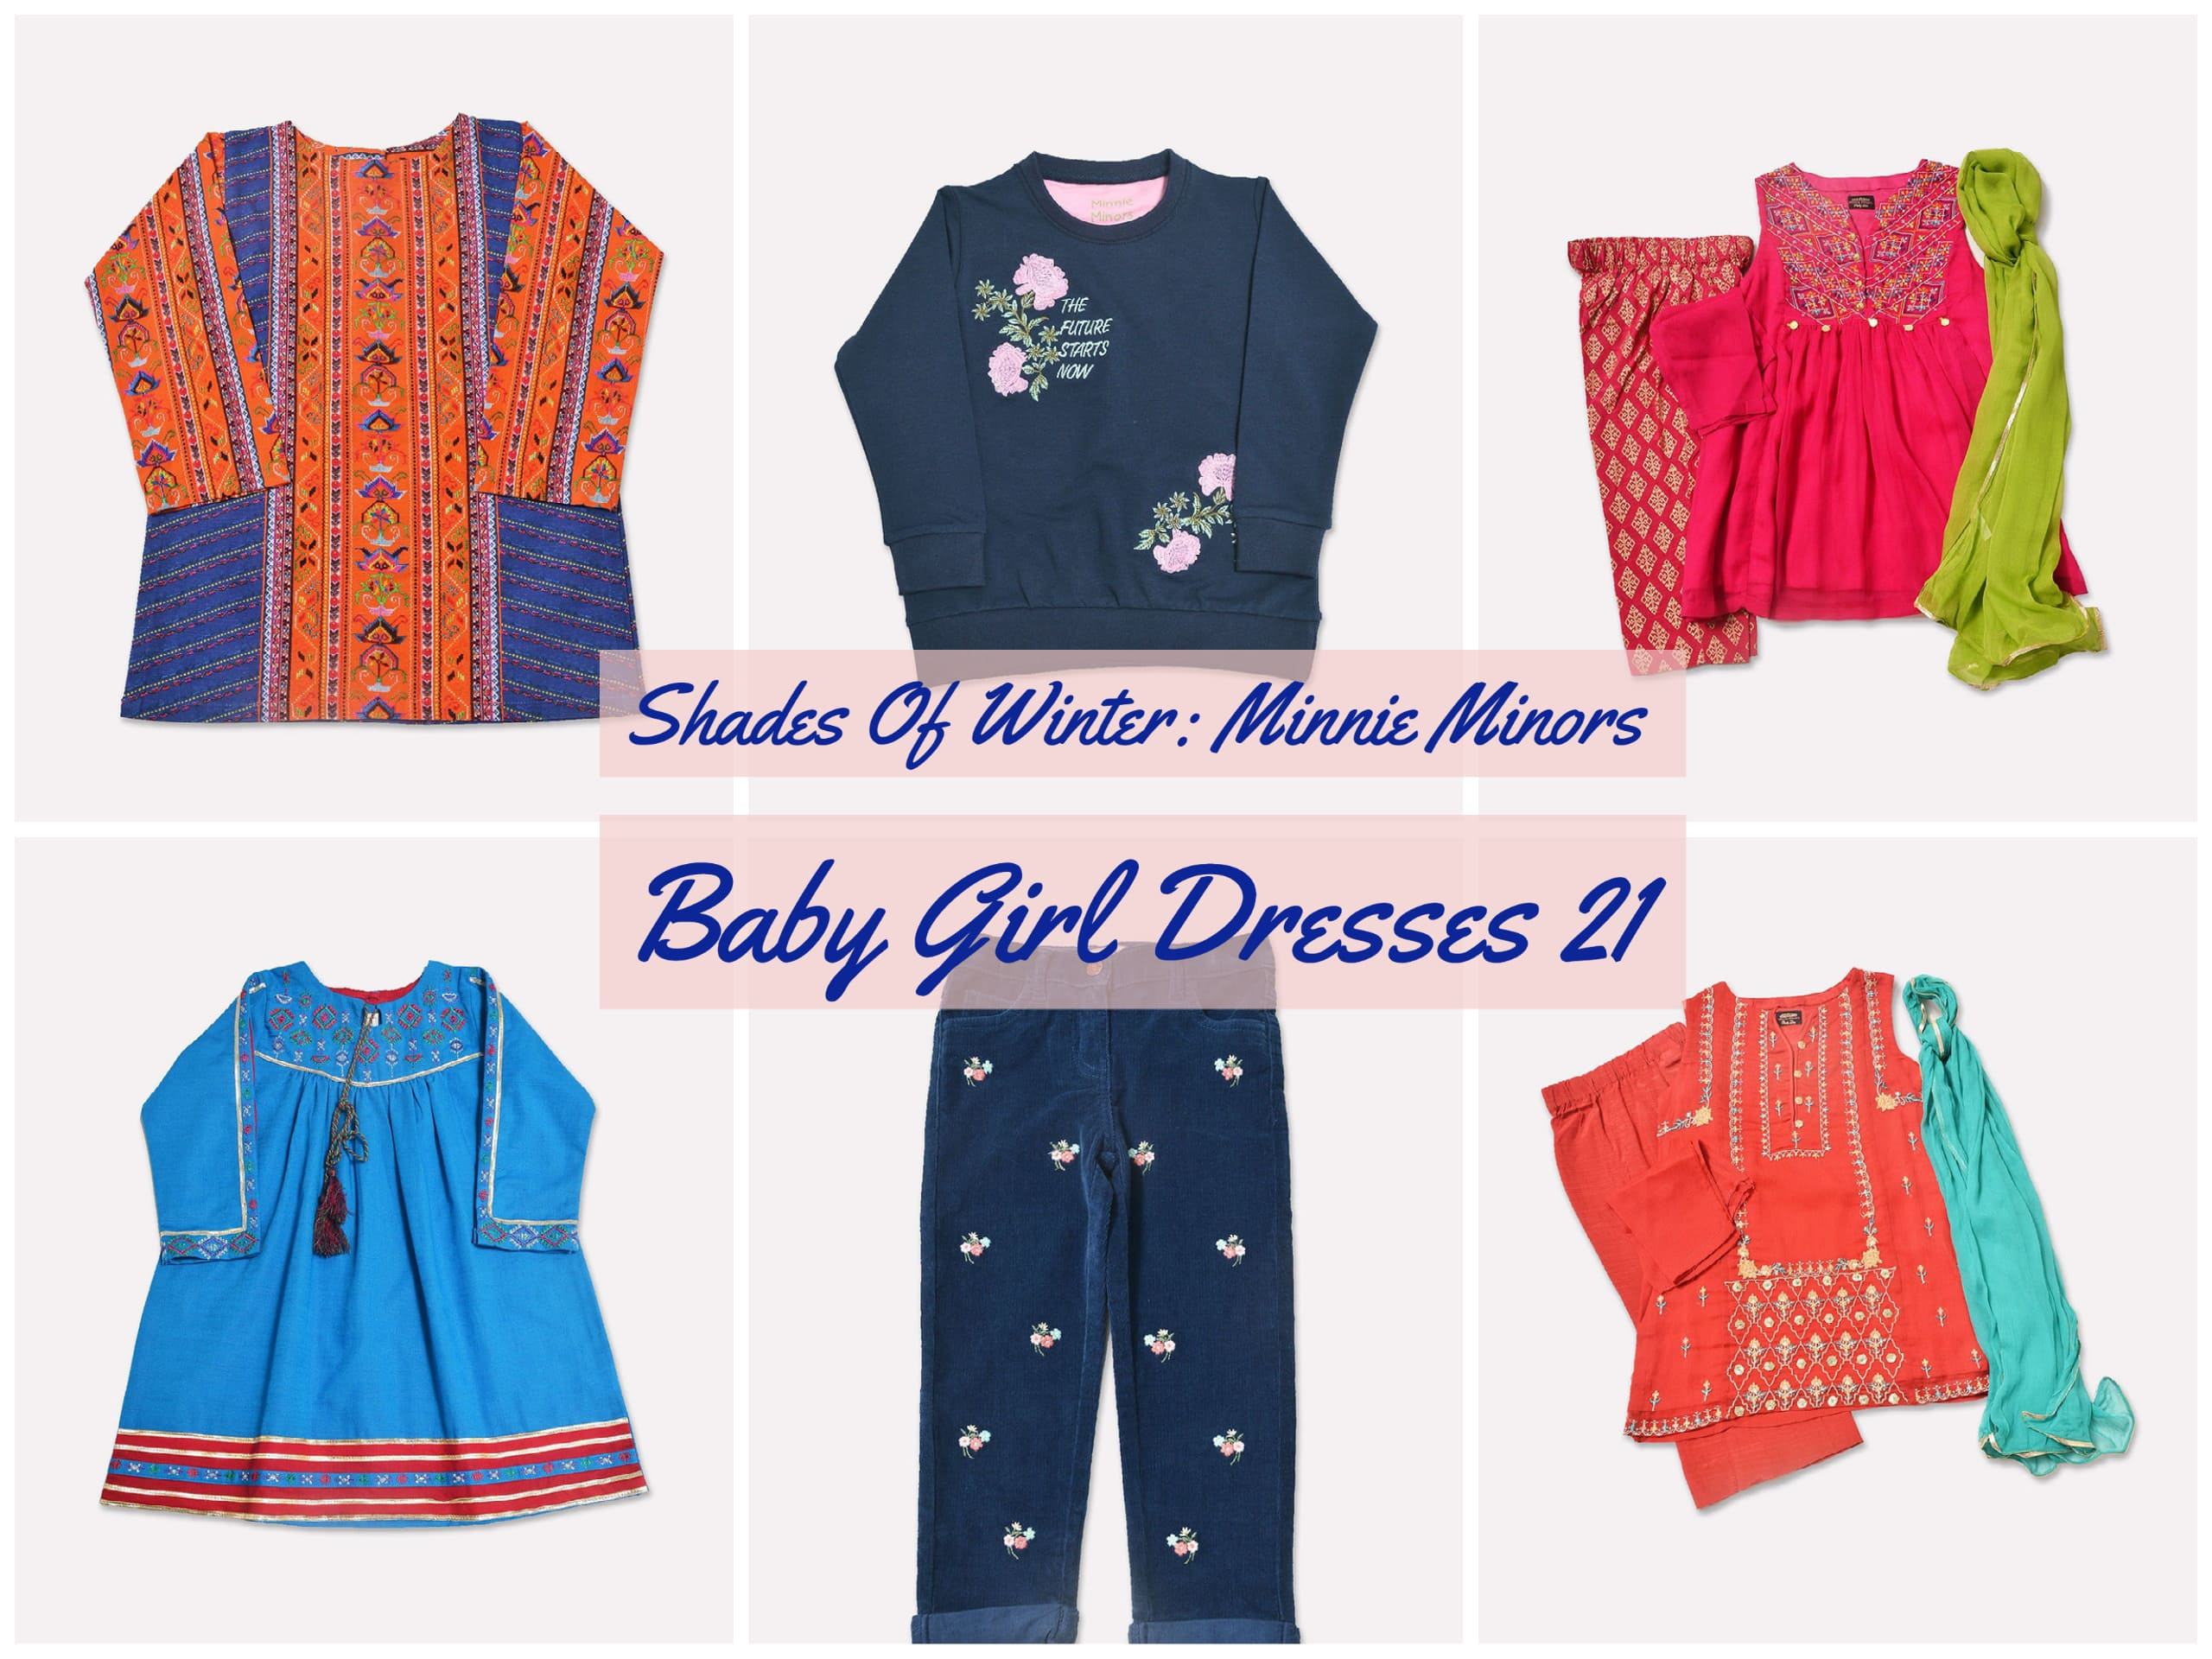 Shades Of Winter: Minnie Minors Baby Girl Dresses 21